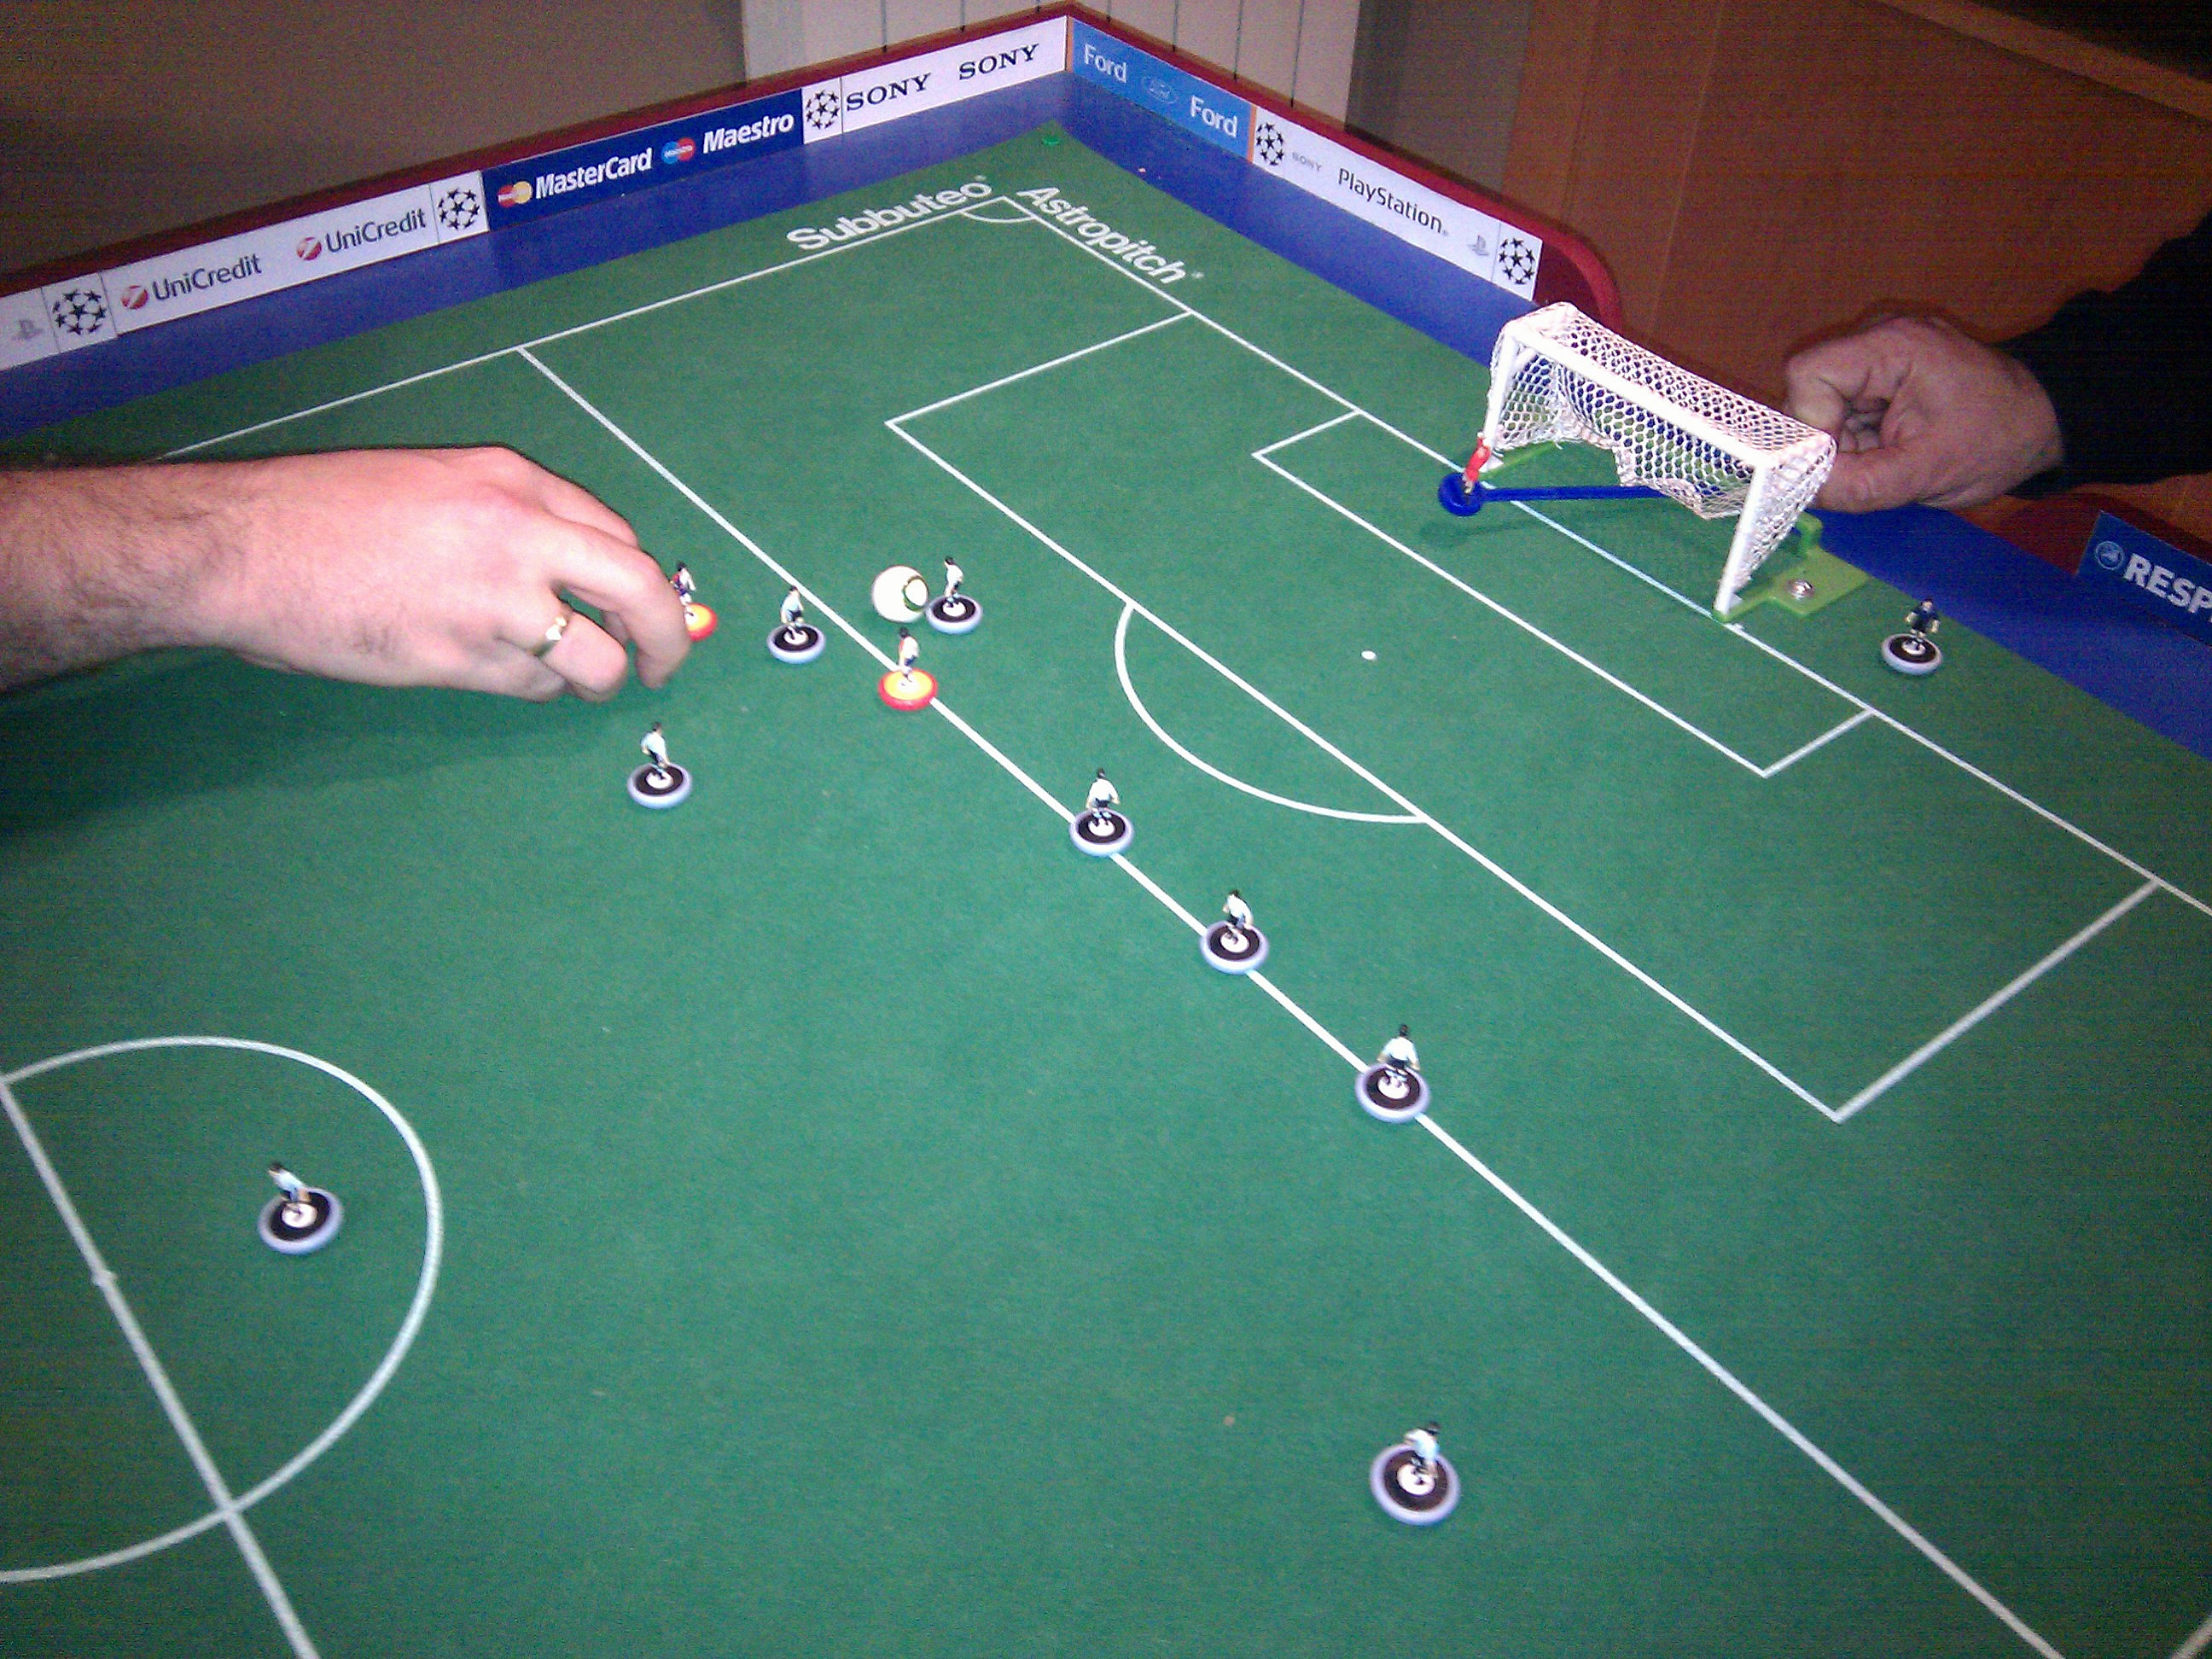 Subbuteo wikiwand for Table wikipedia